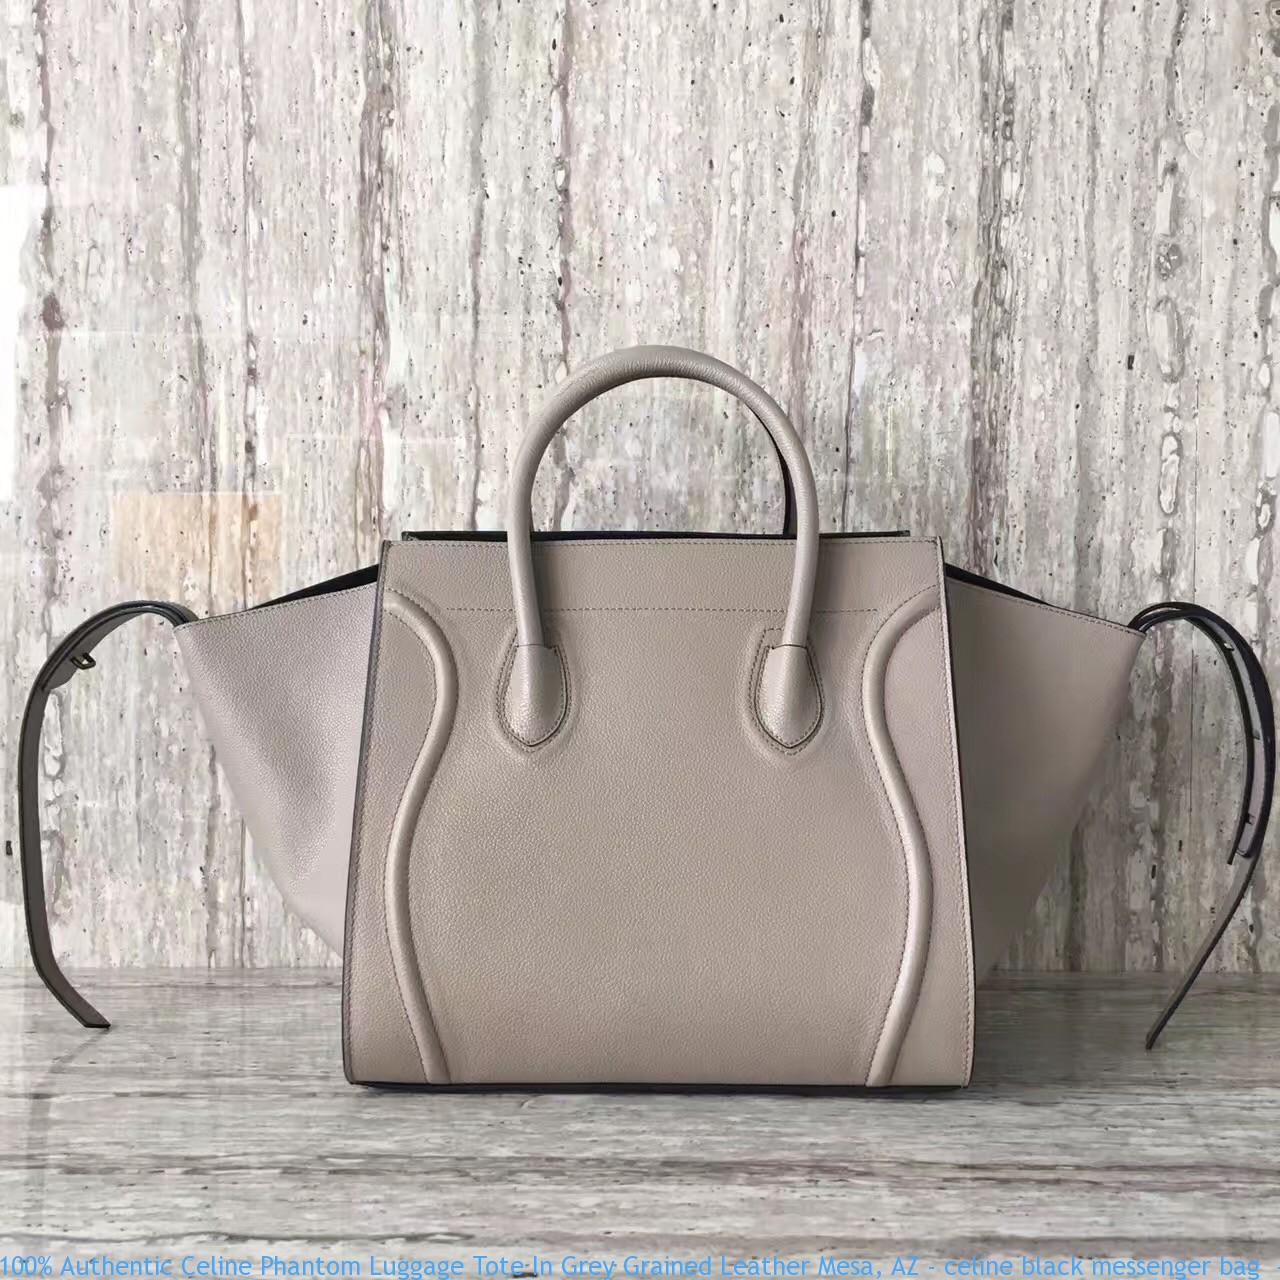 100% Authentic Celine Phantom Luggage Tote In Grey Grained Leather ... bd4ee247fcc0b